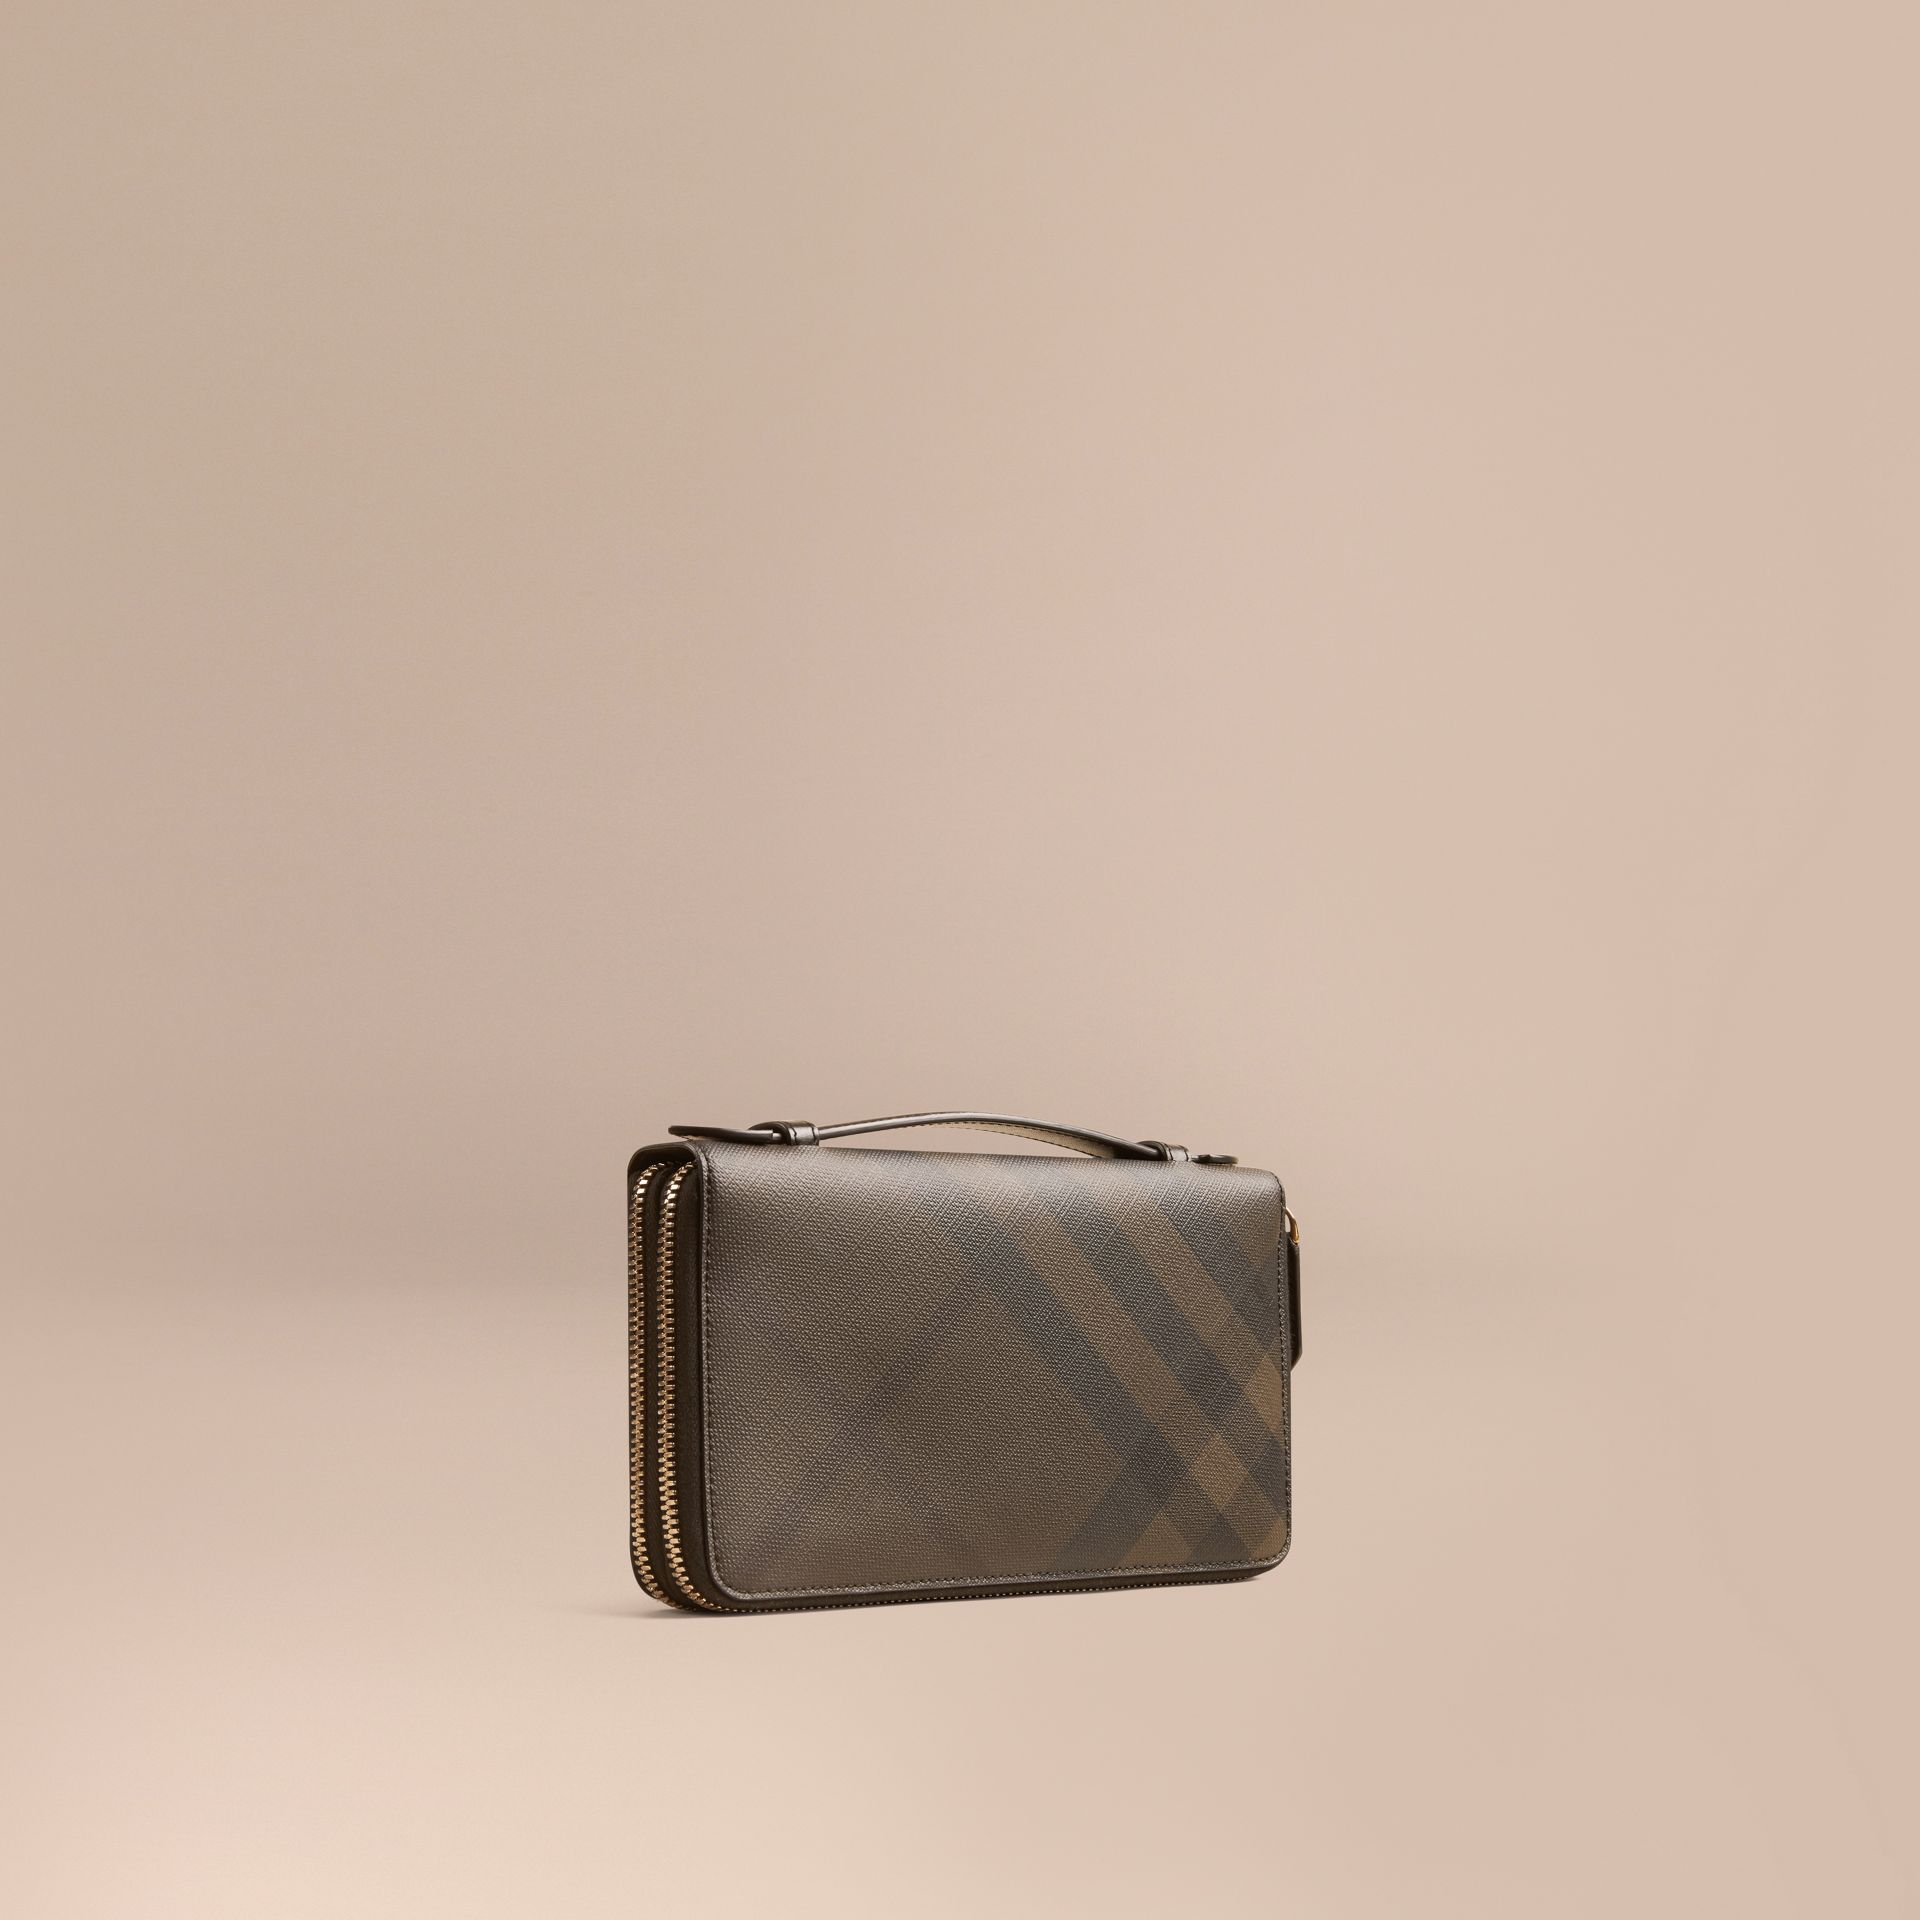 London Check Travel Wallet in Chocolate/black - Men | Burberry - gallery image 1